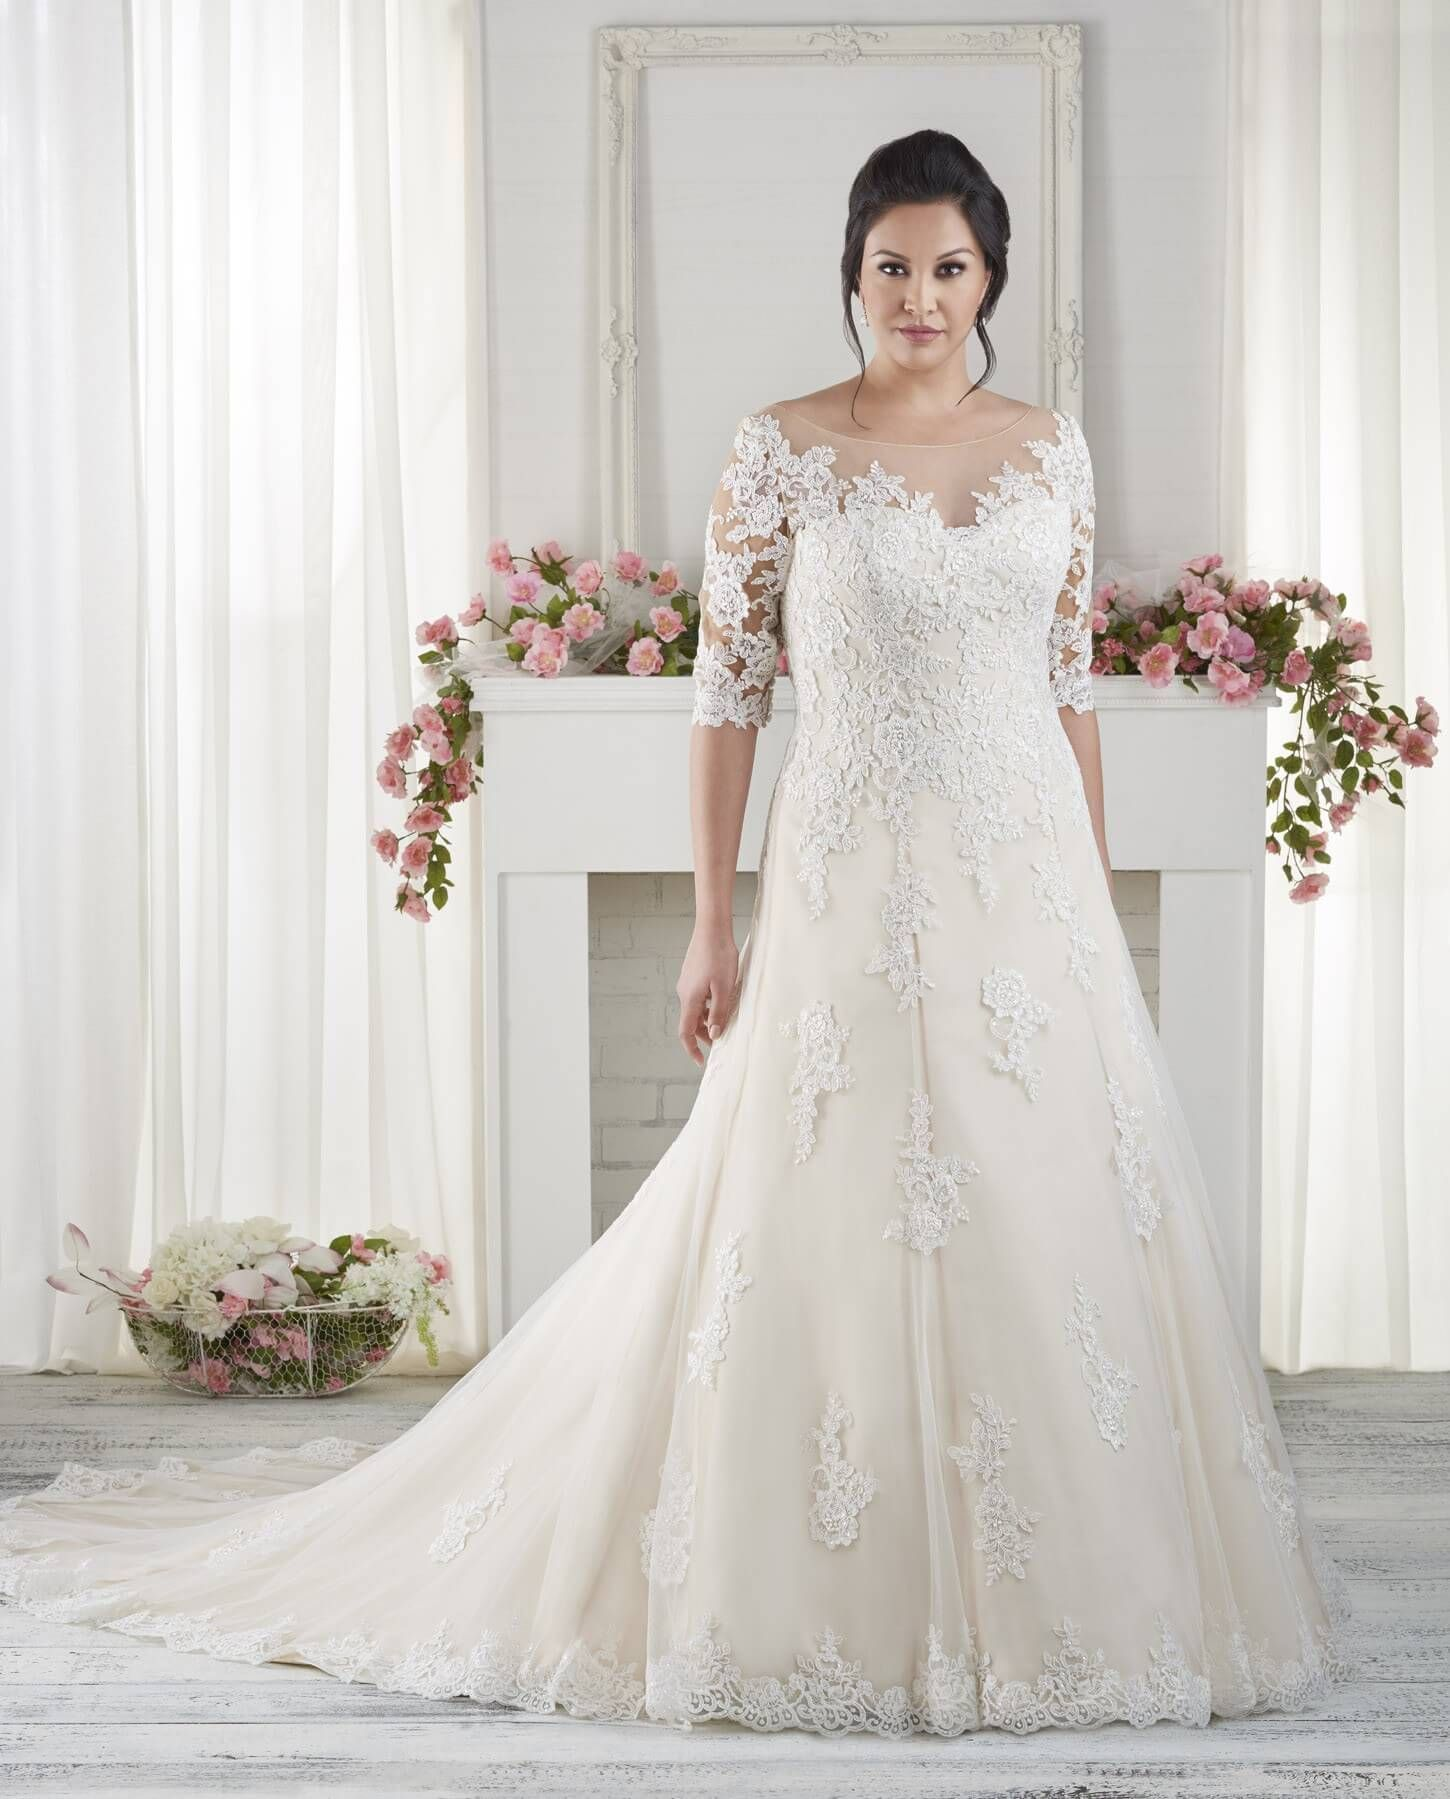 The Best Wedding Dresses for Fat Arms Pinterest Sleeved wedding